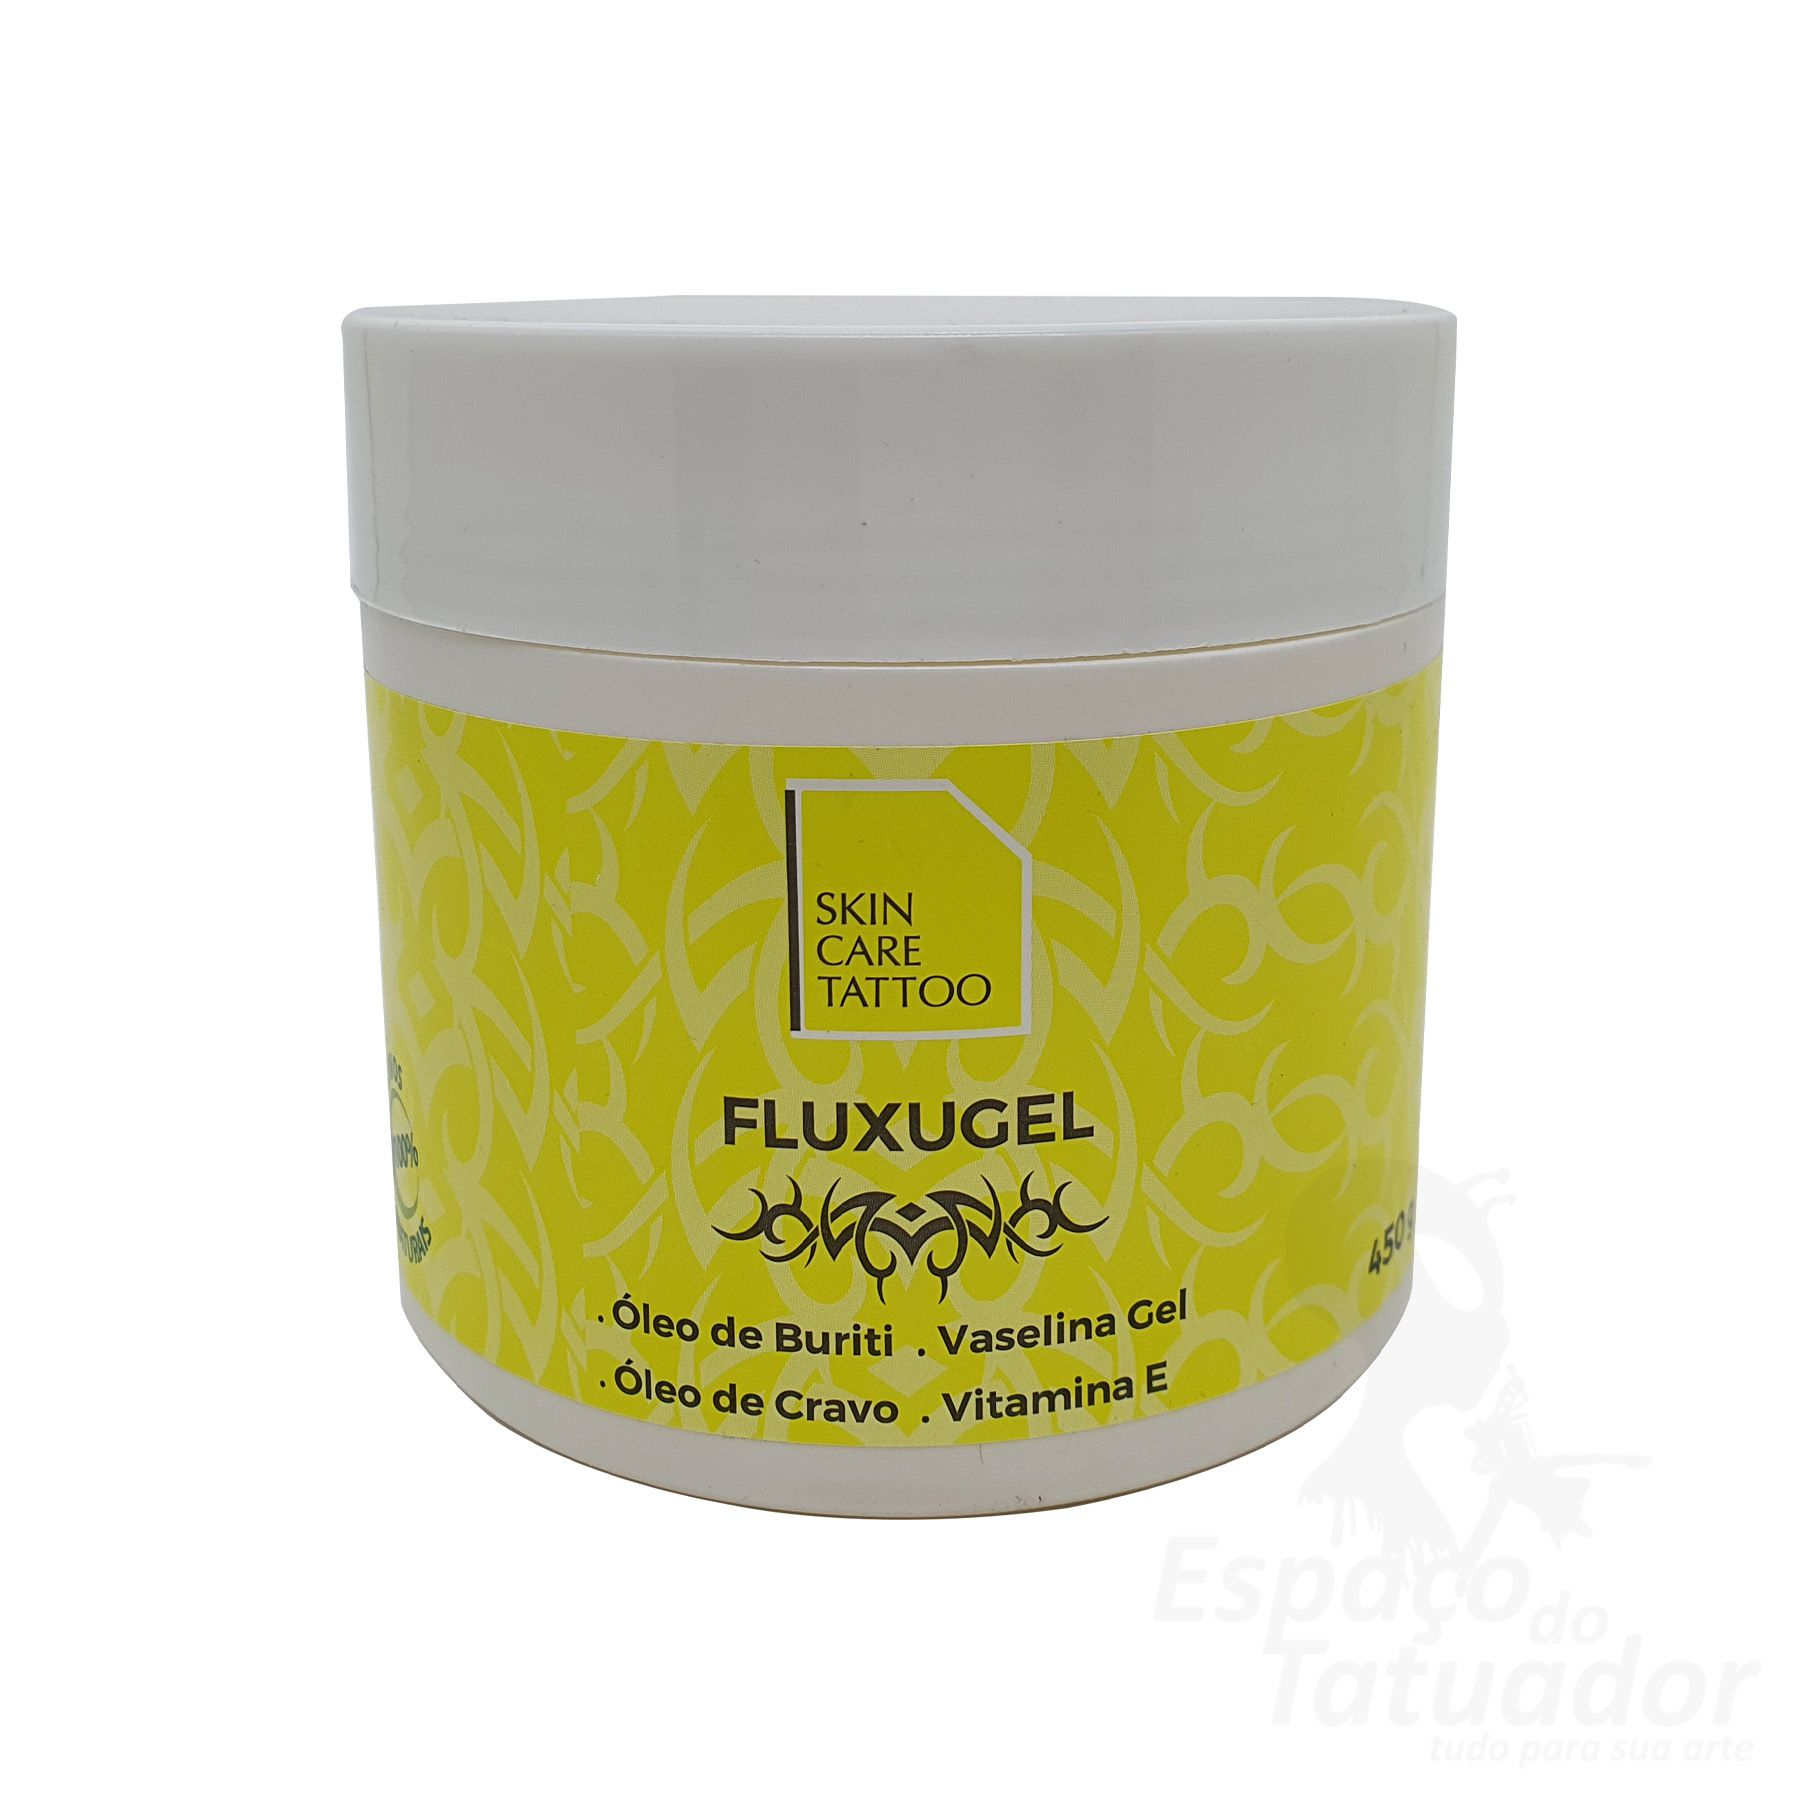 Fluxugel Skin Care 450g